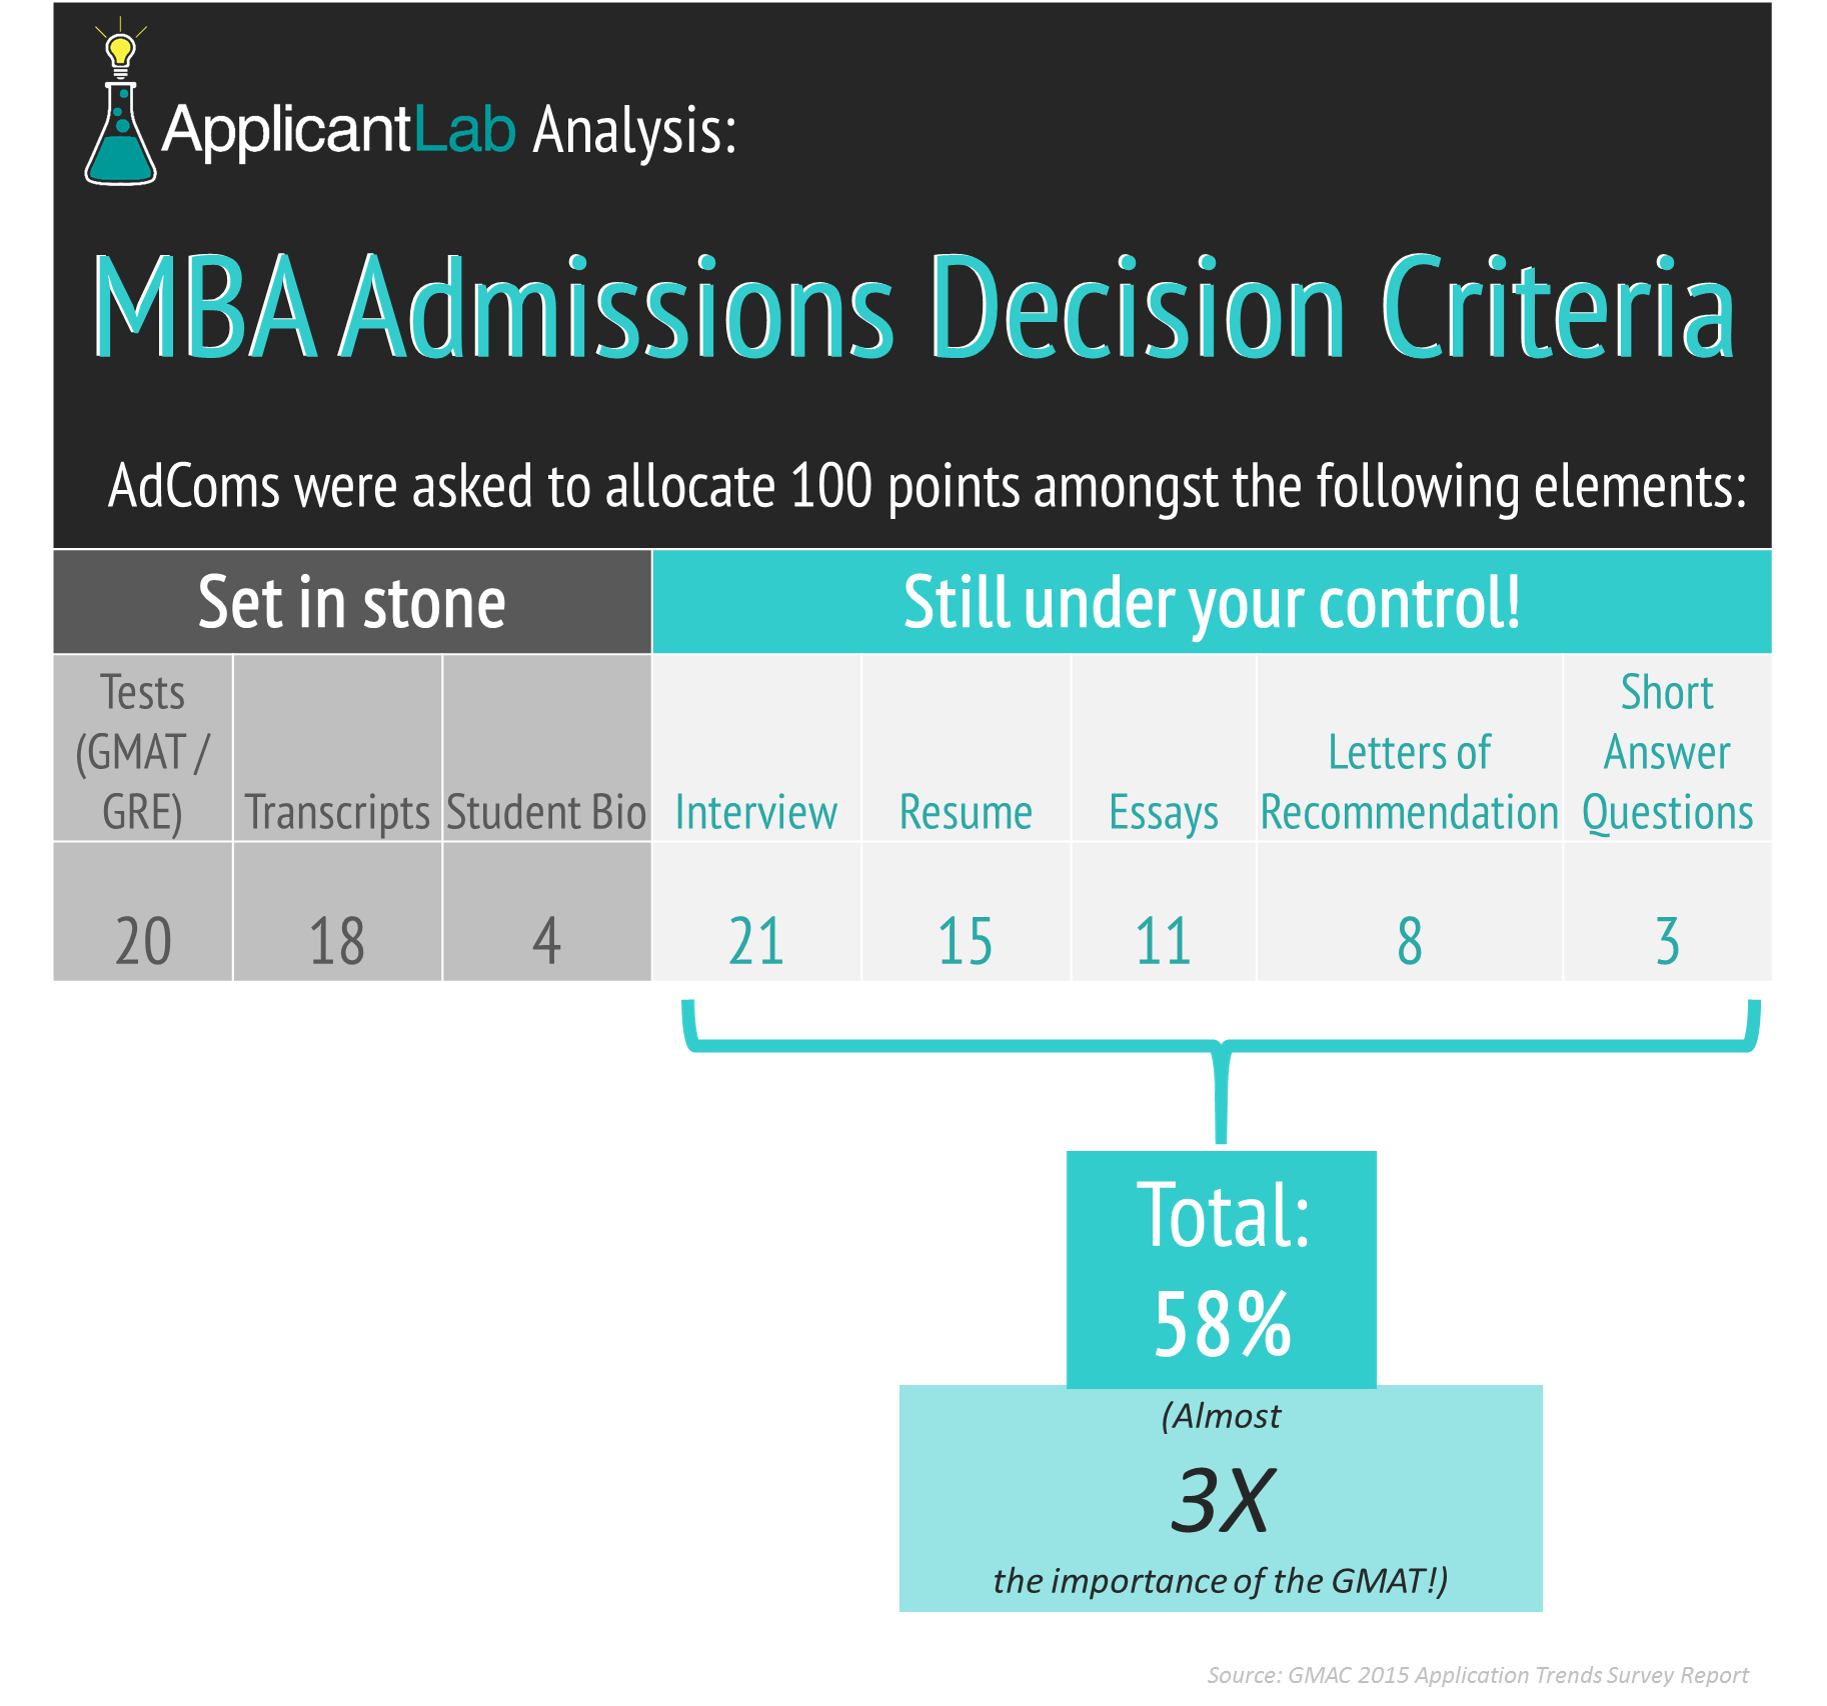 infographic most important elements in MBA application